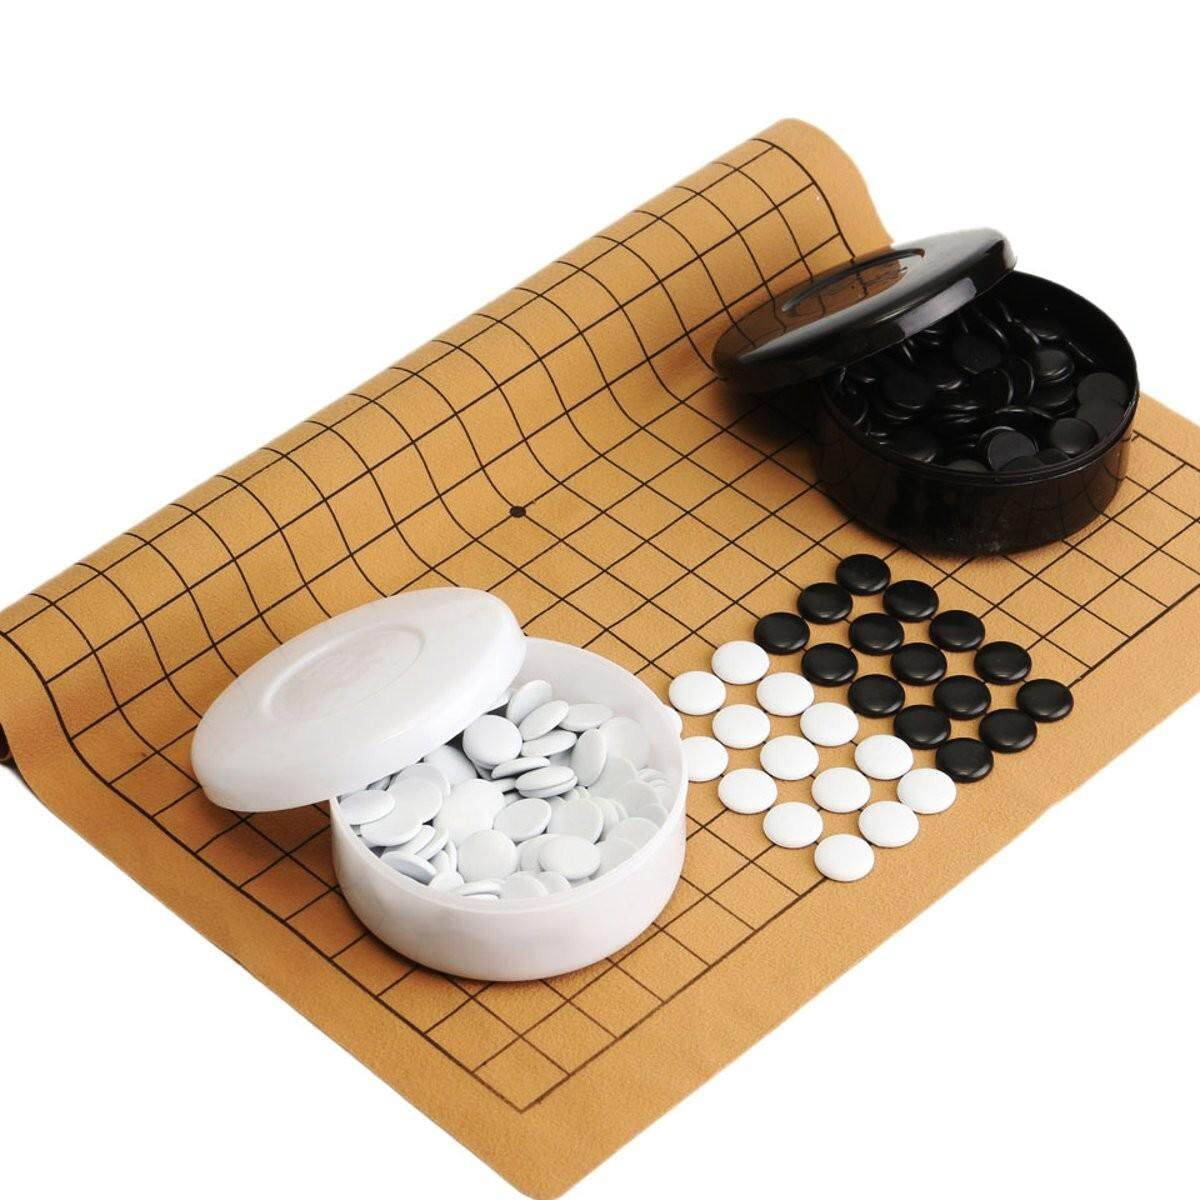 361Pcs/Set Go Game Weiqi Professional Bang Mental Suede Leather Board Sheet Play